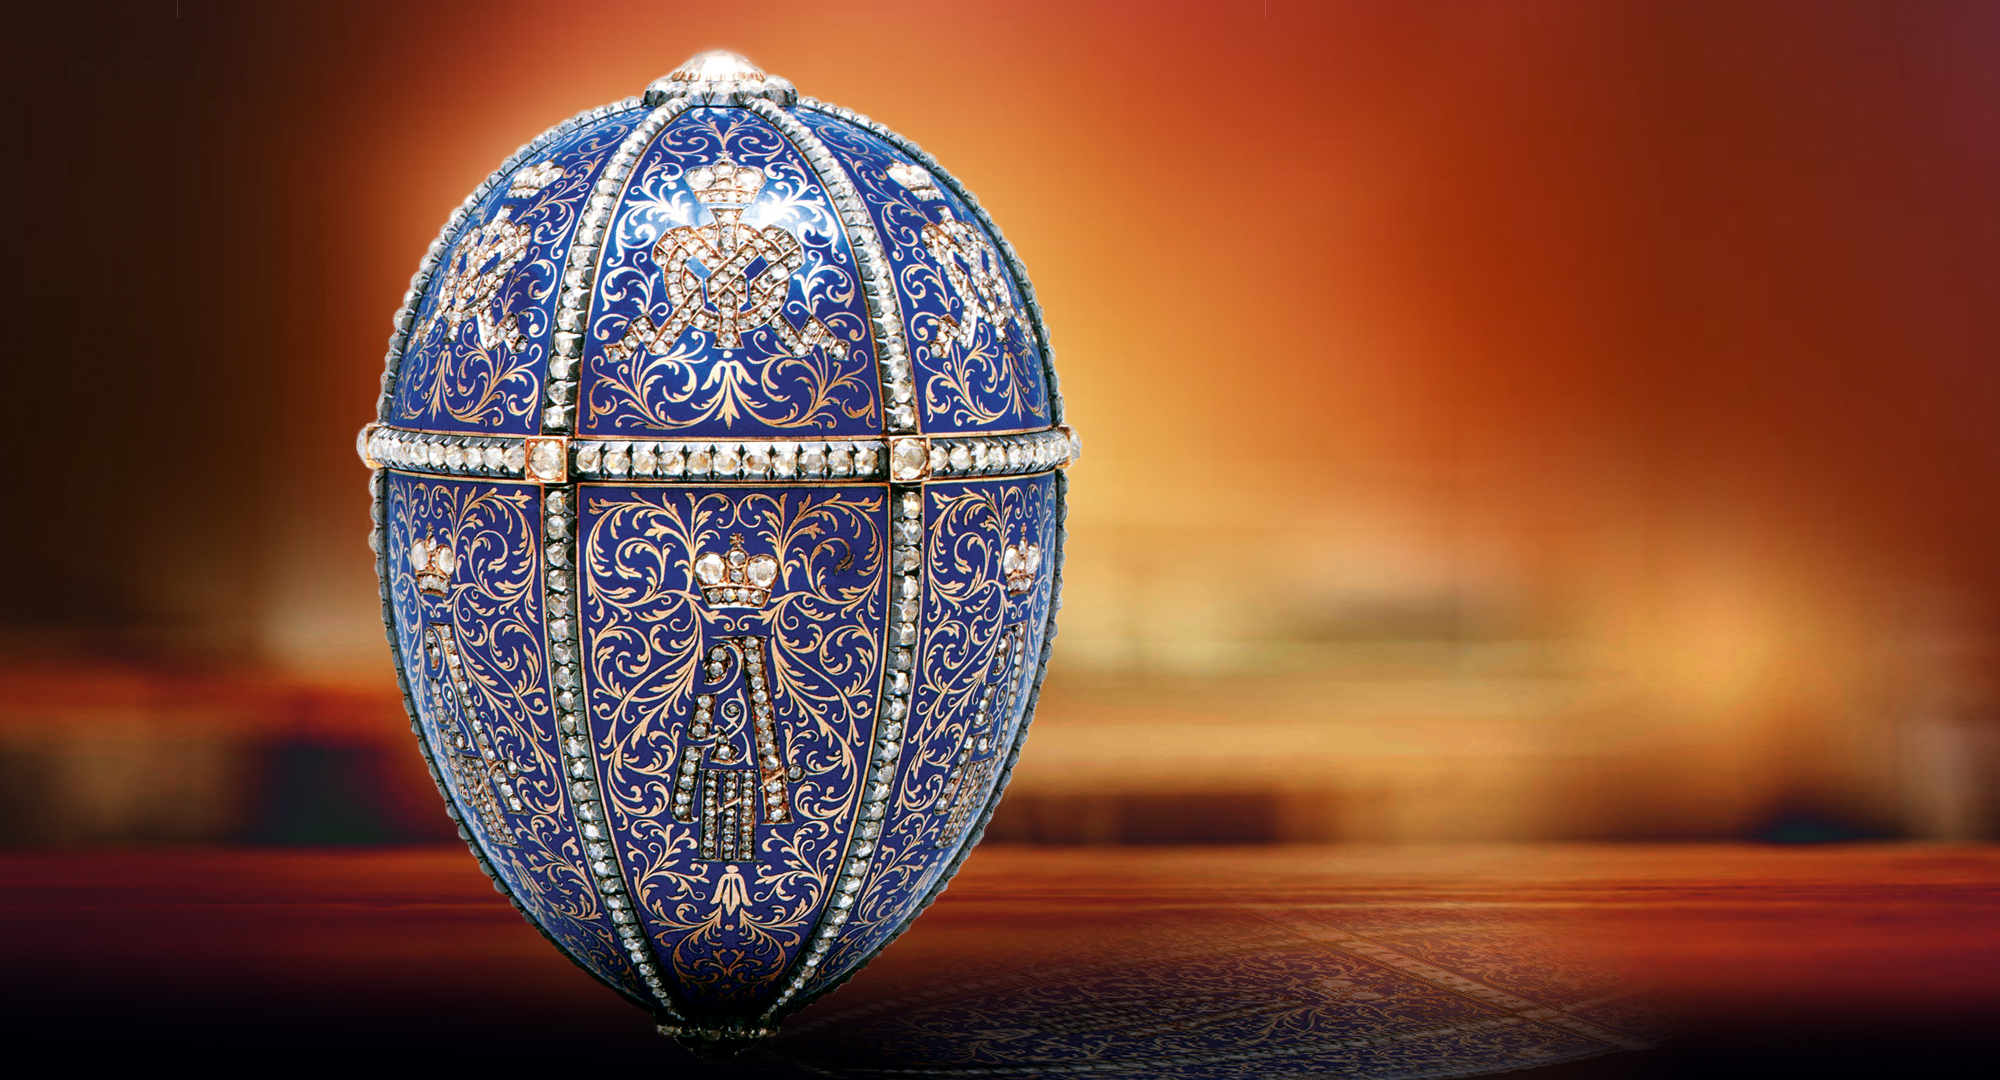 Fabergé Egg - Twelve Monograms, Also known as the Alexandra III portraits egg